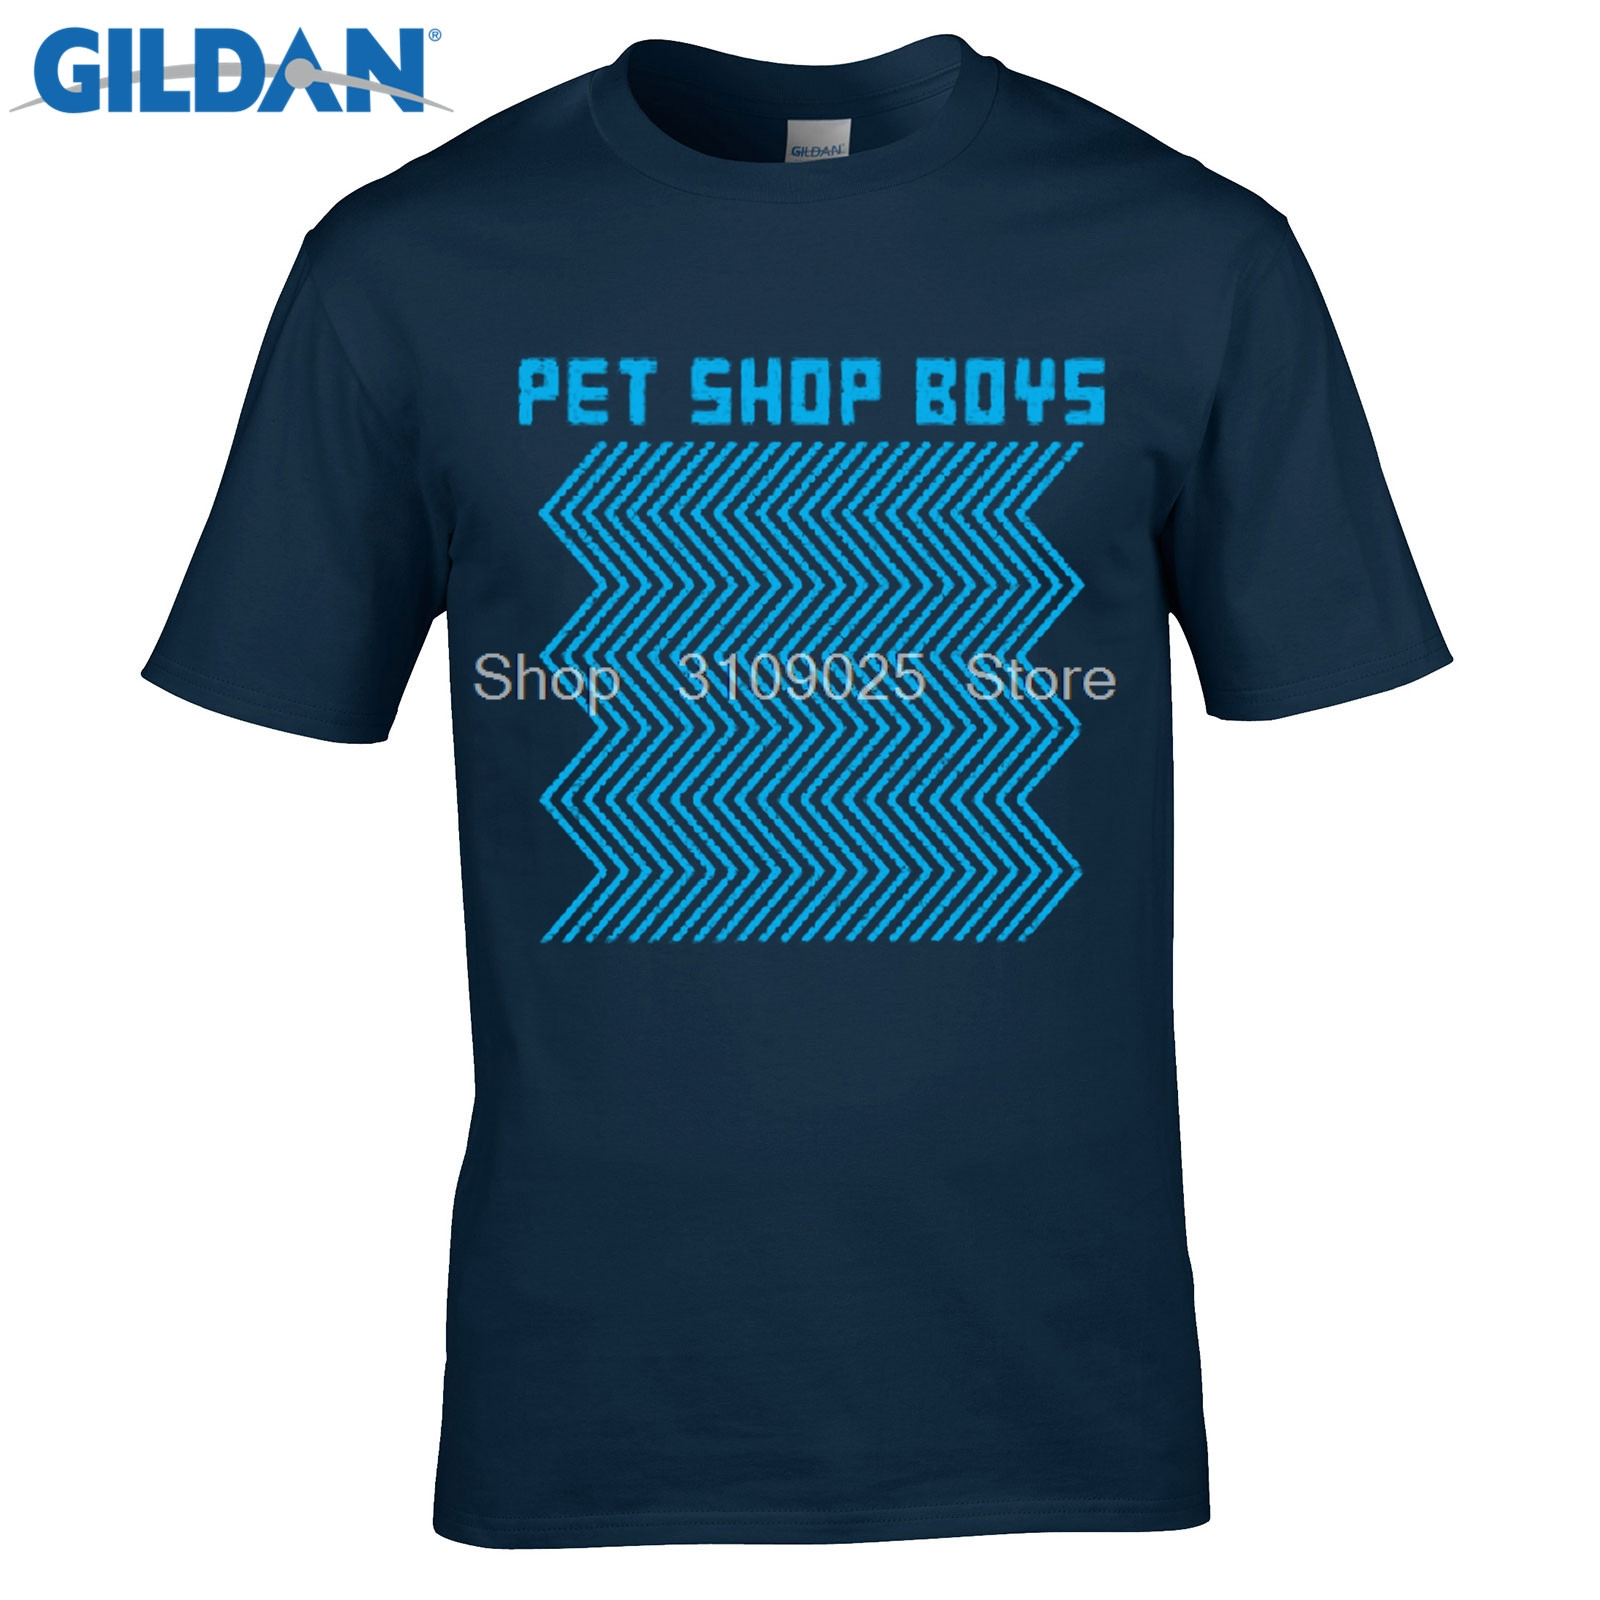 GILDAN men fashion brand t shirt 2017 MenS Short Sleeve Pet Shop Boys Electric Electronic Pop Duo Printed MenS T Shirt